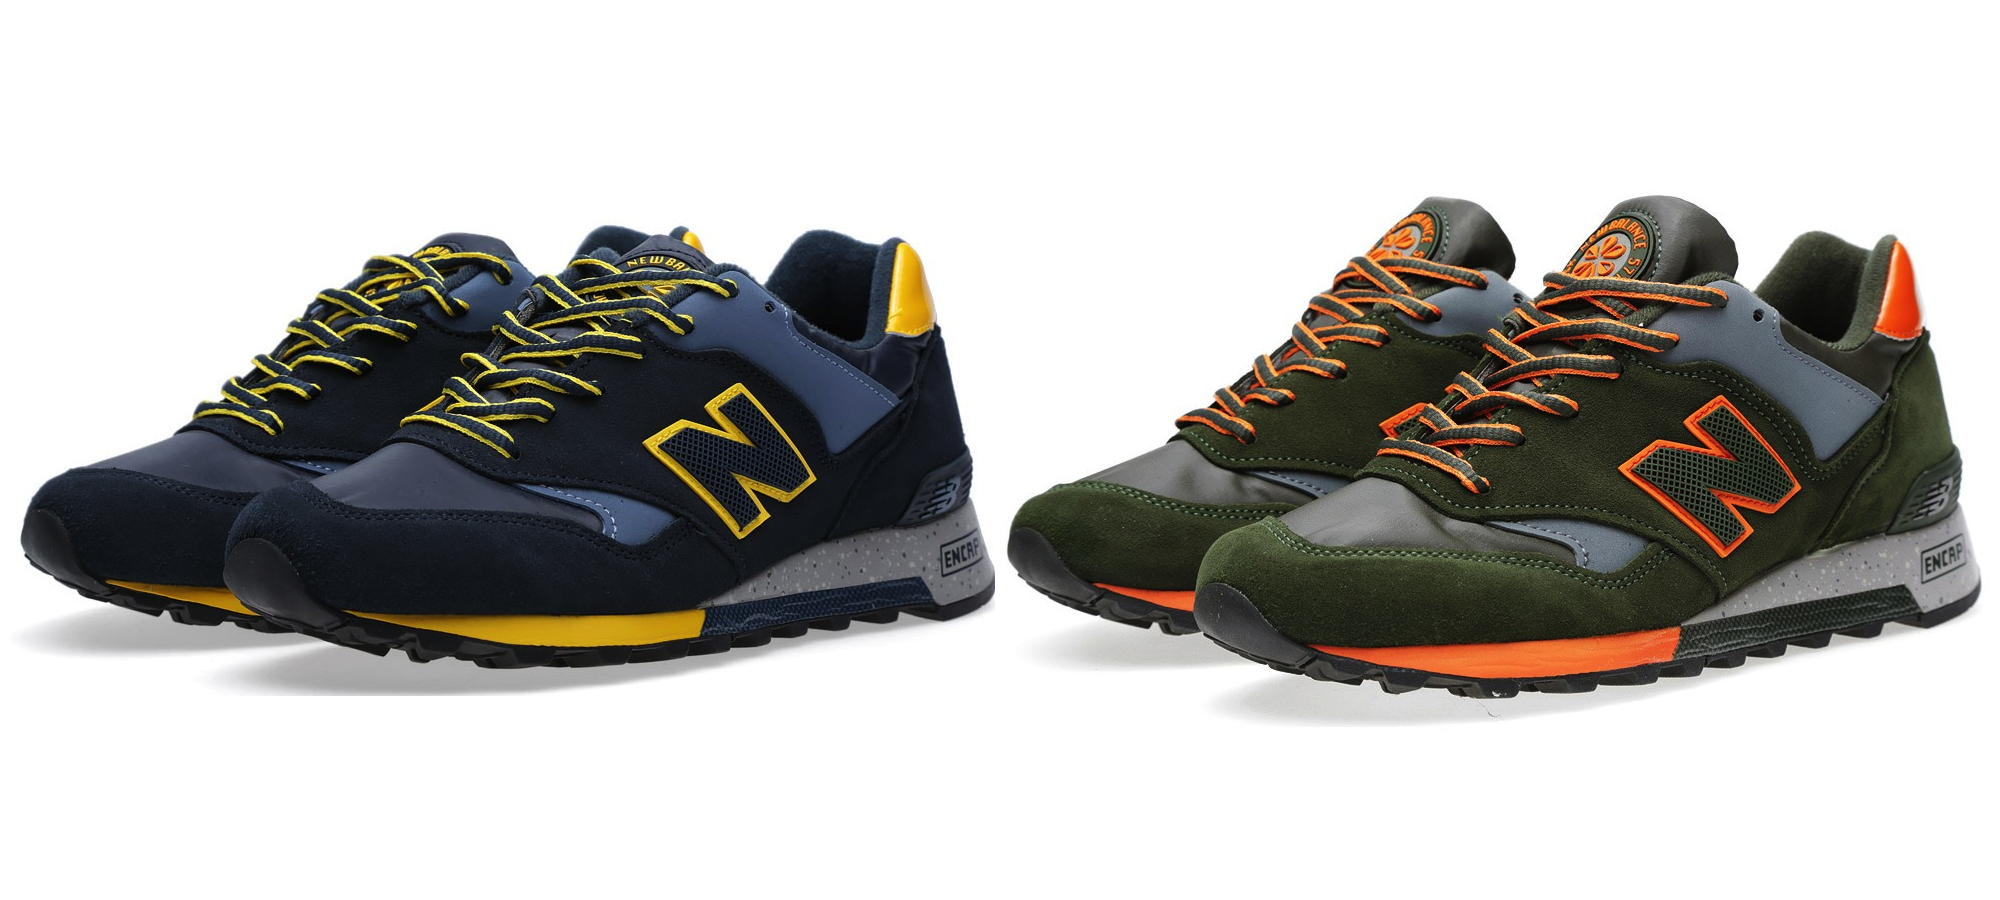 New Balance M577 Rain Mac Pack